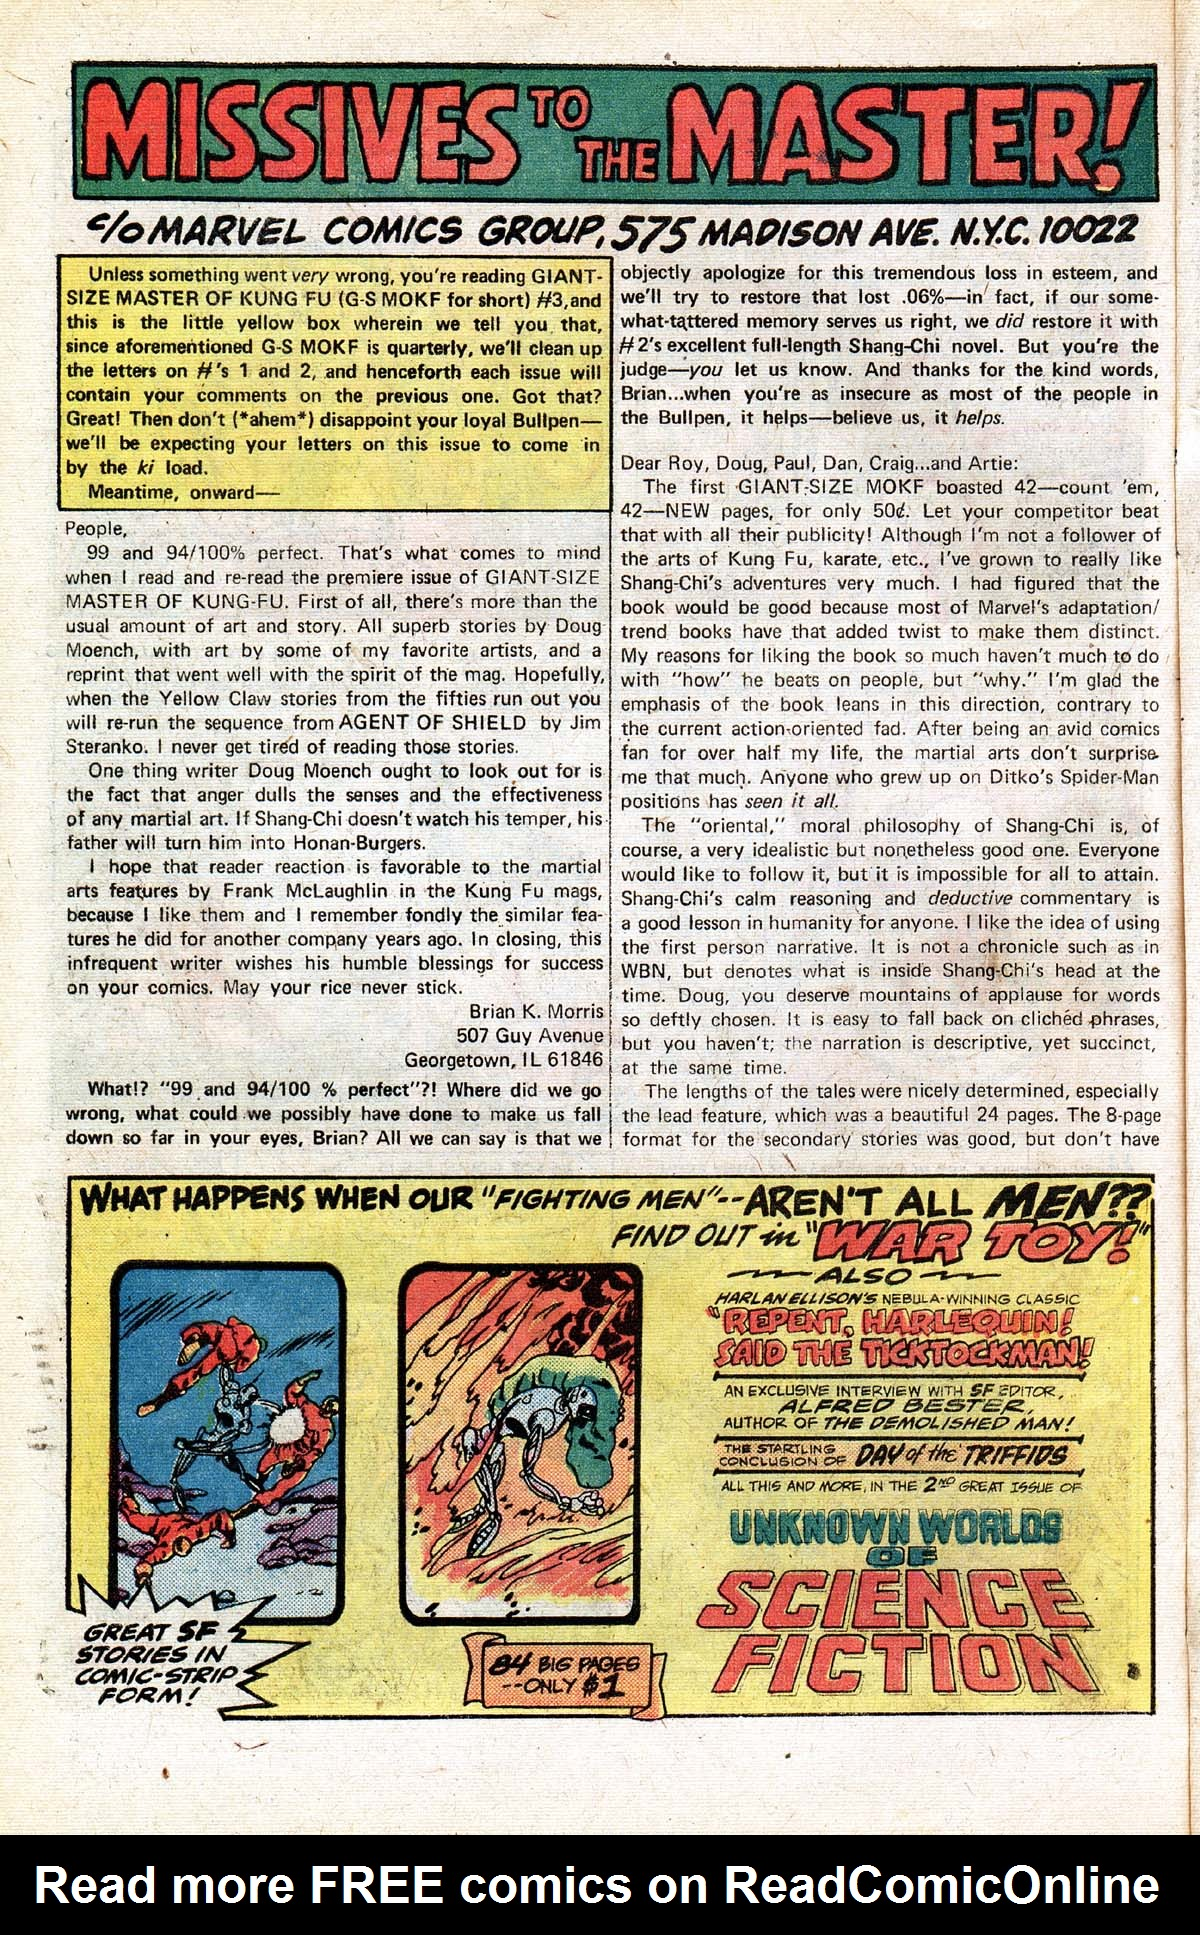 Read online Giant-Size Master of Kung Fu comic -  Issue #3 - 43